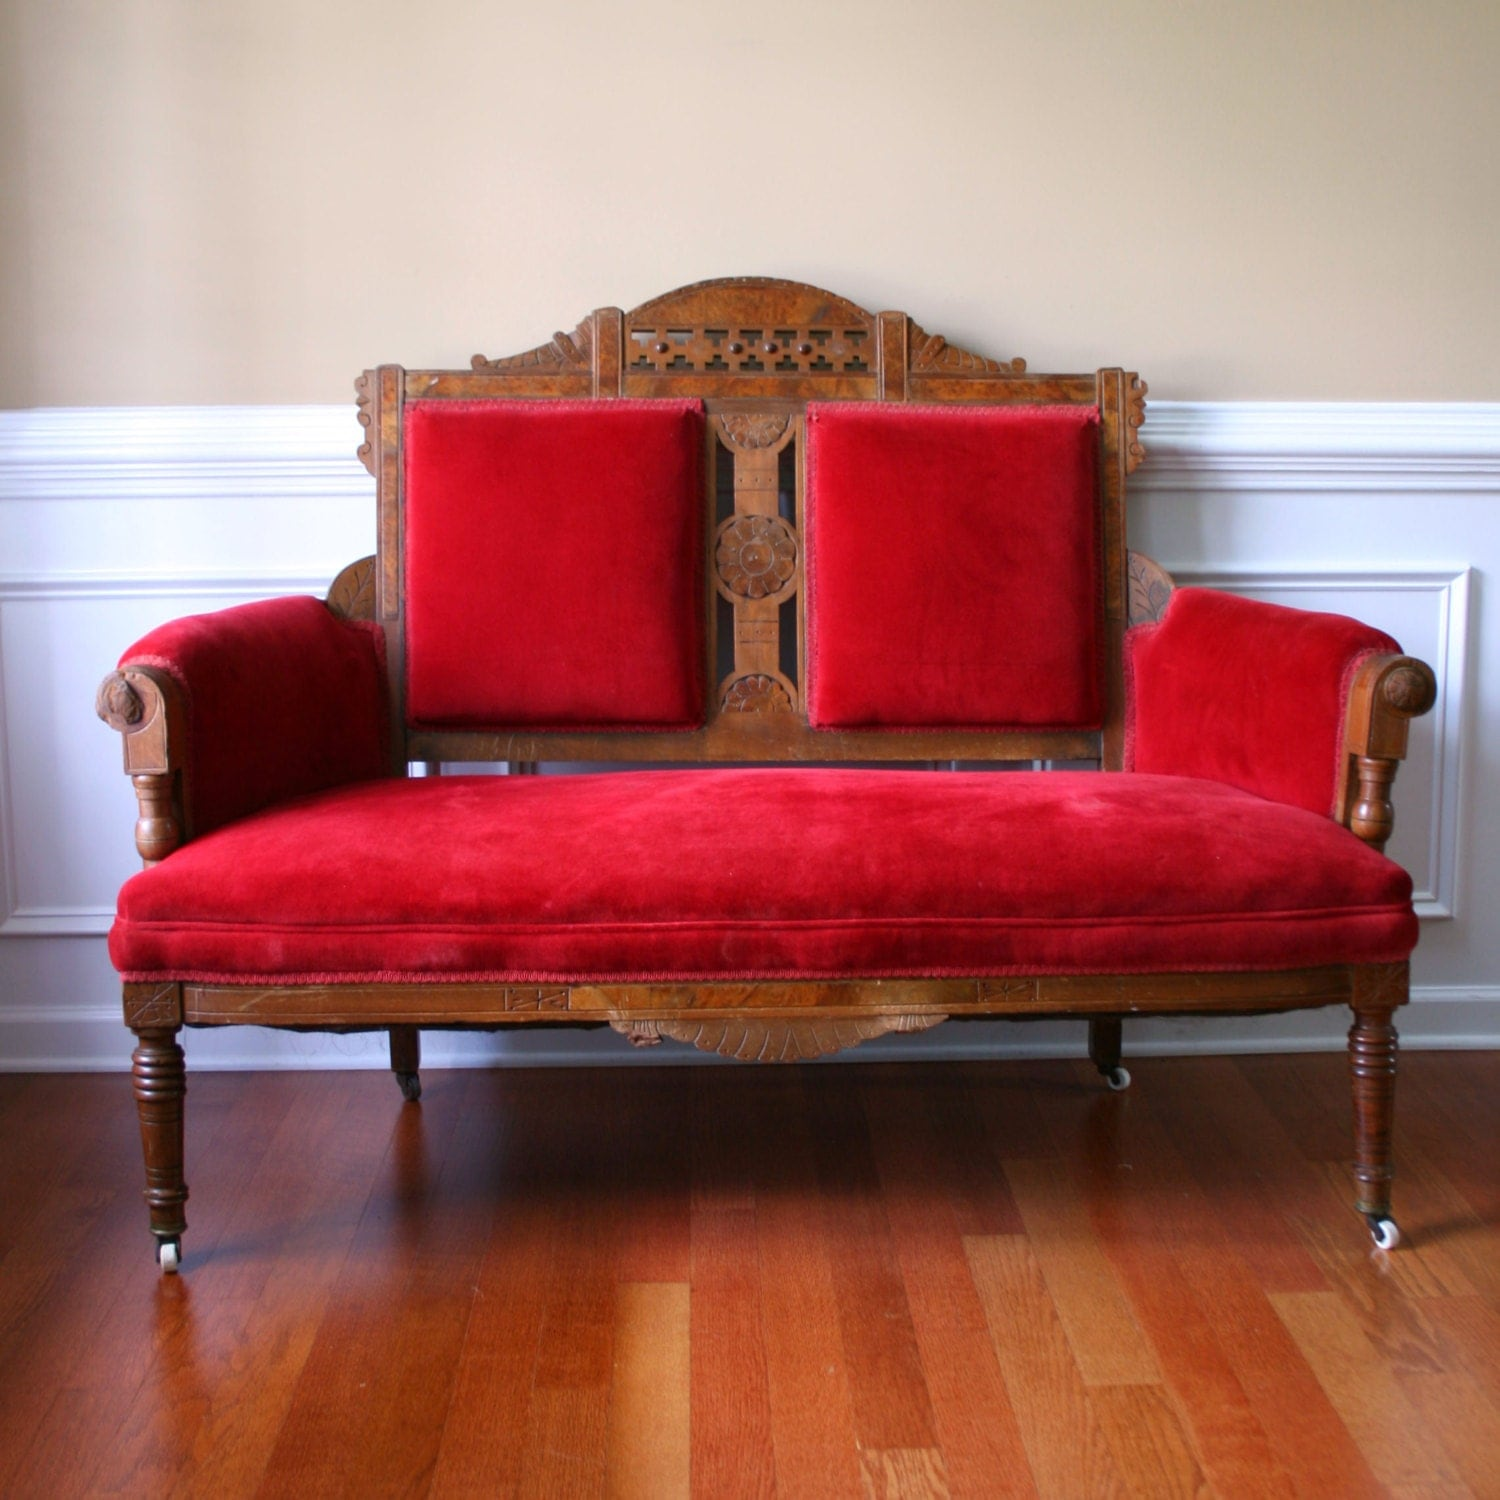 Vintage eastlake sofa antique settee love seat red couch Retro loveseats